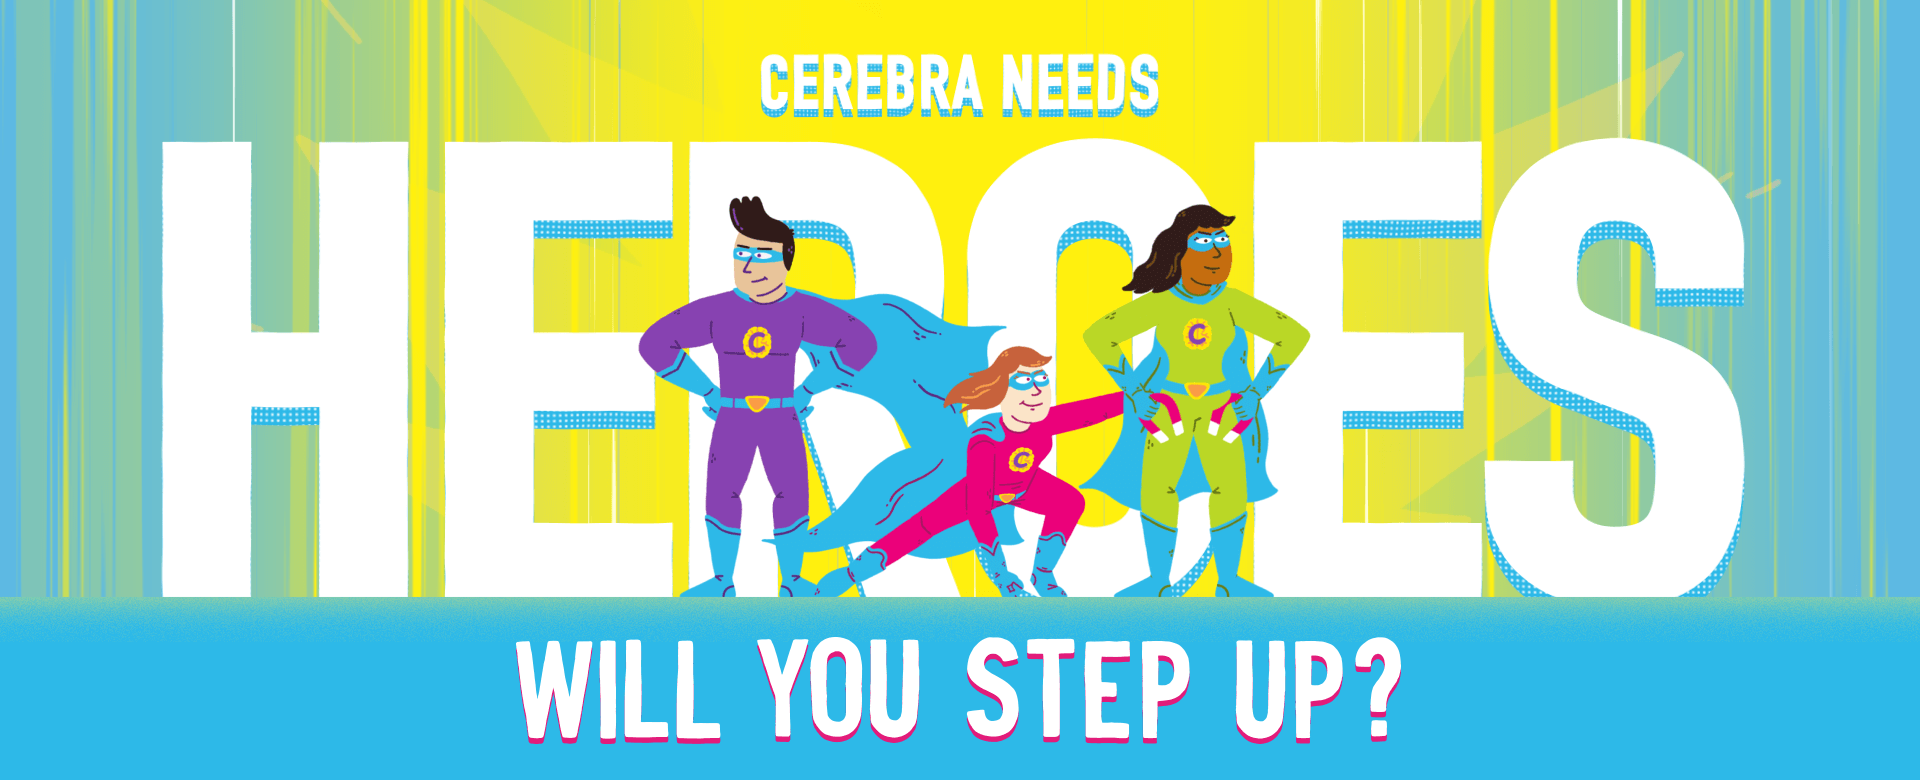 Cerebra Needs Heroes - will you step up?